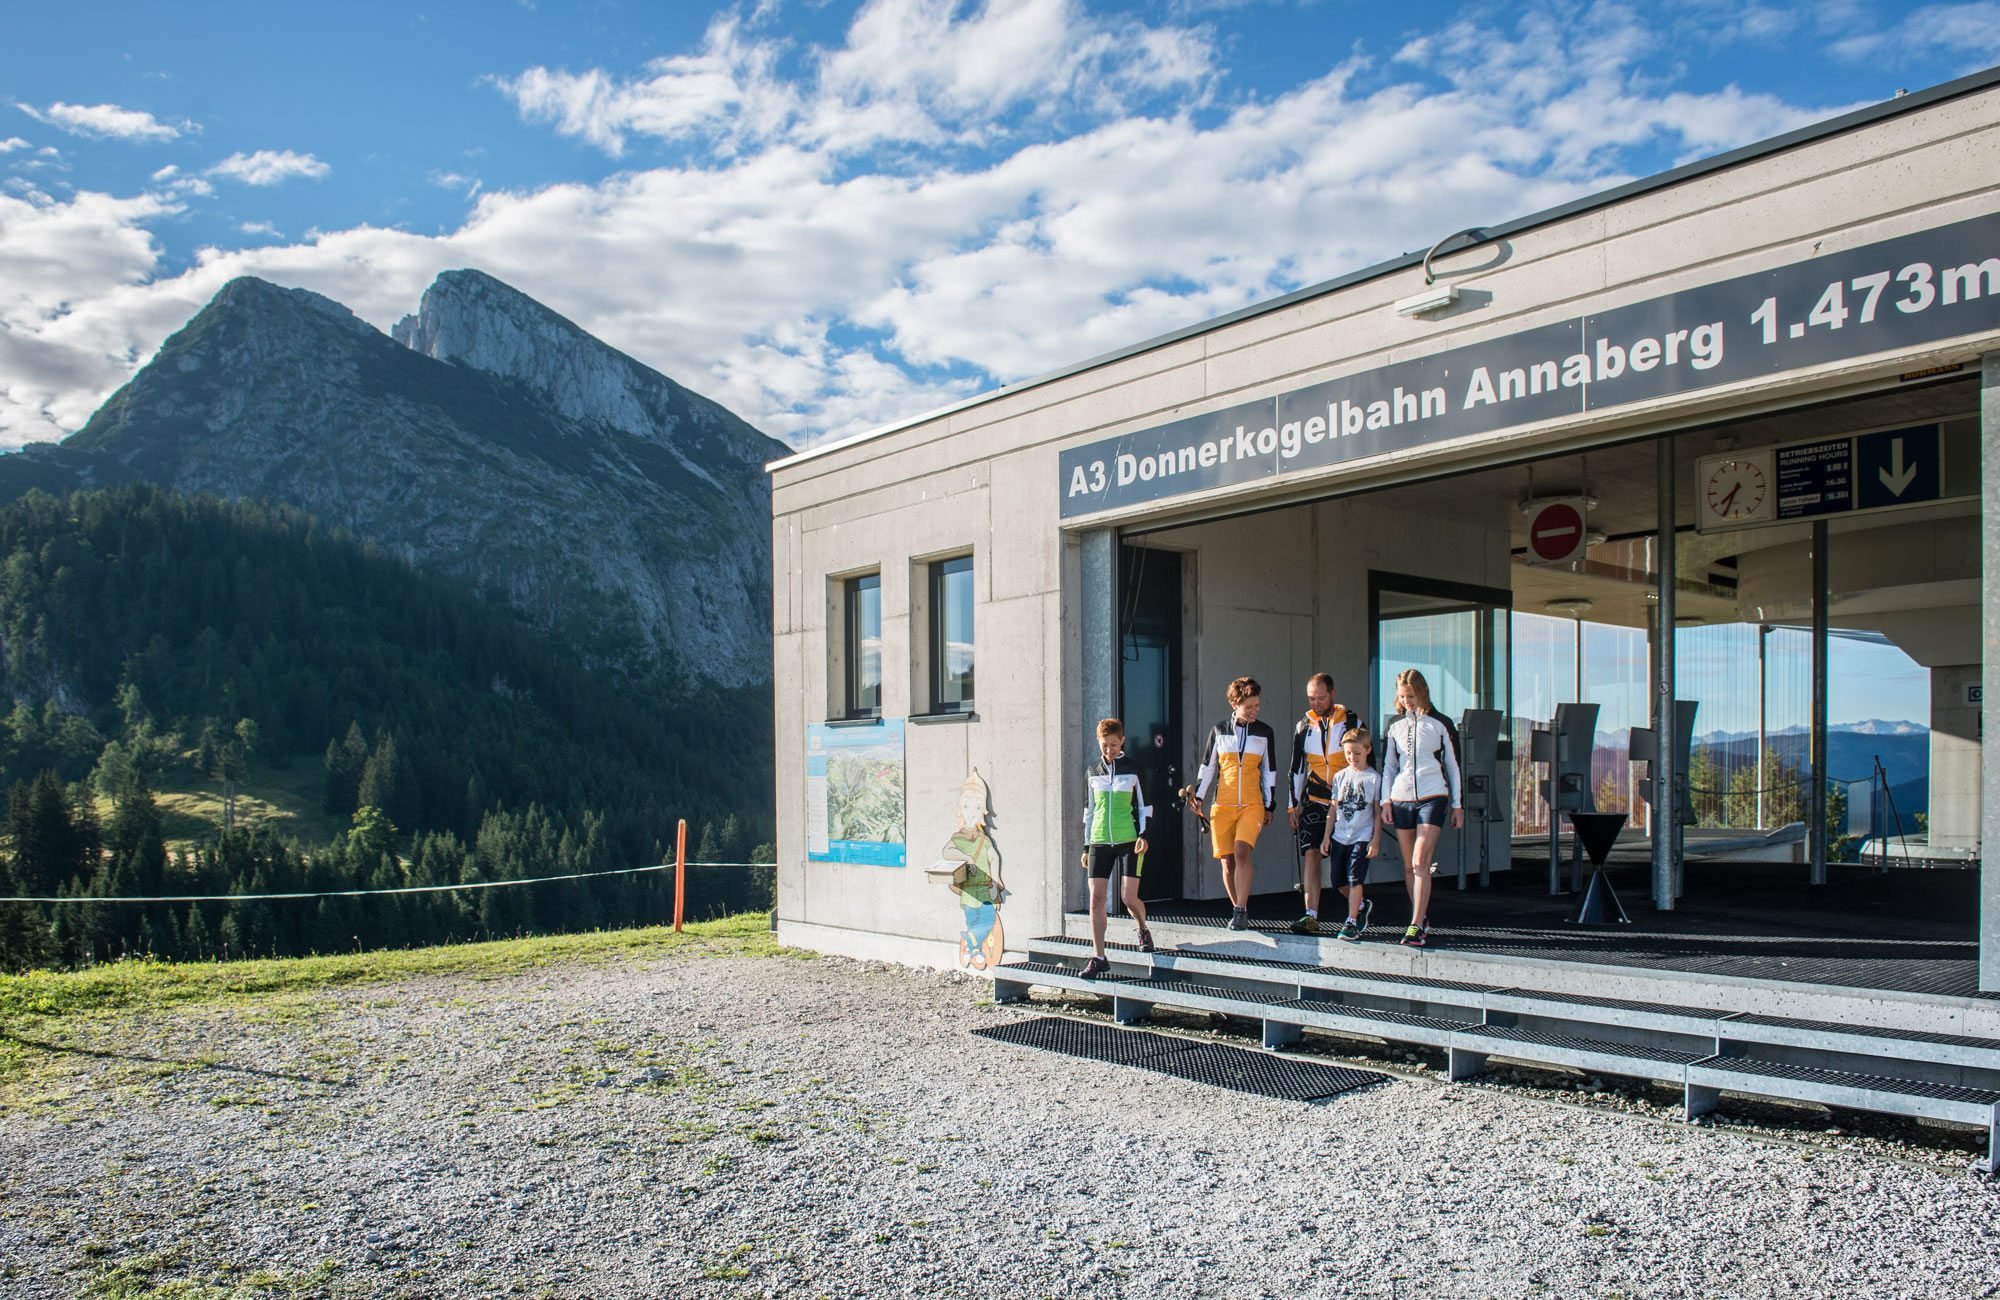 Mountain station of the Donnerkogl cable car in Annaberg-Lungötz